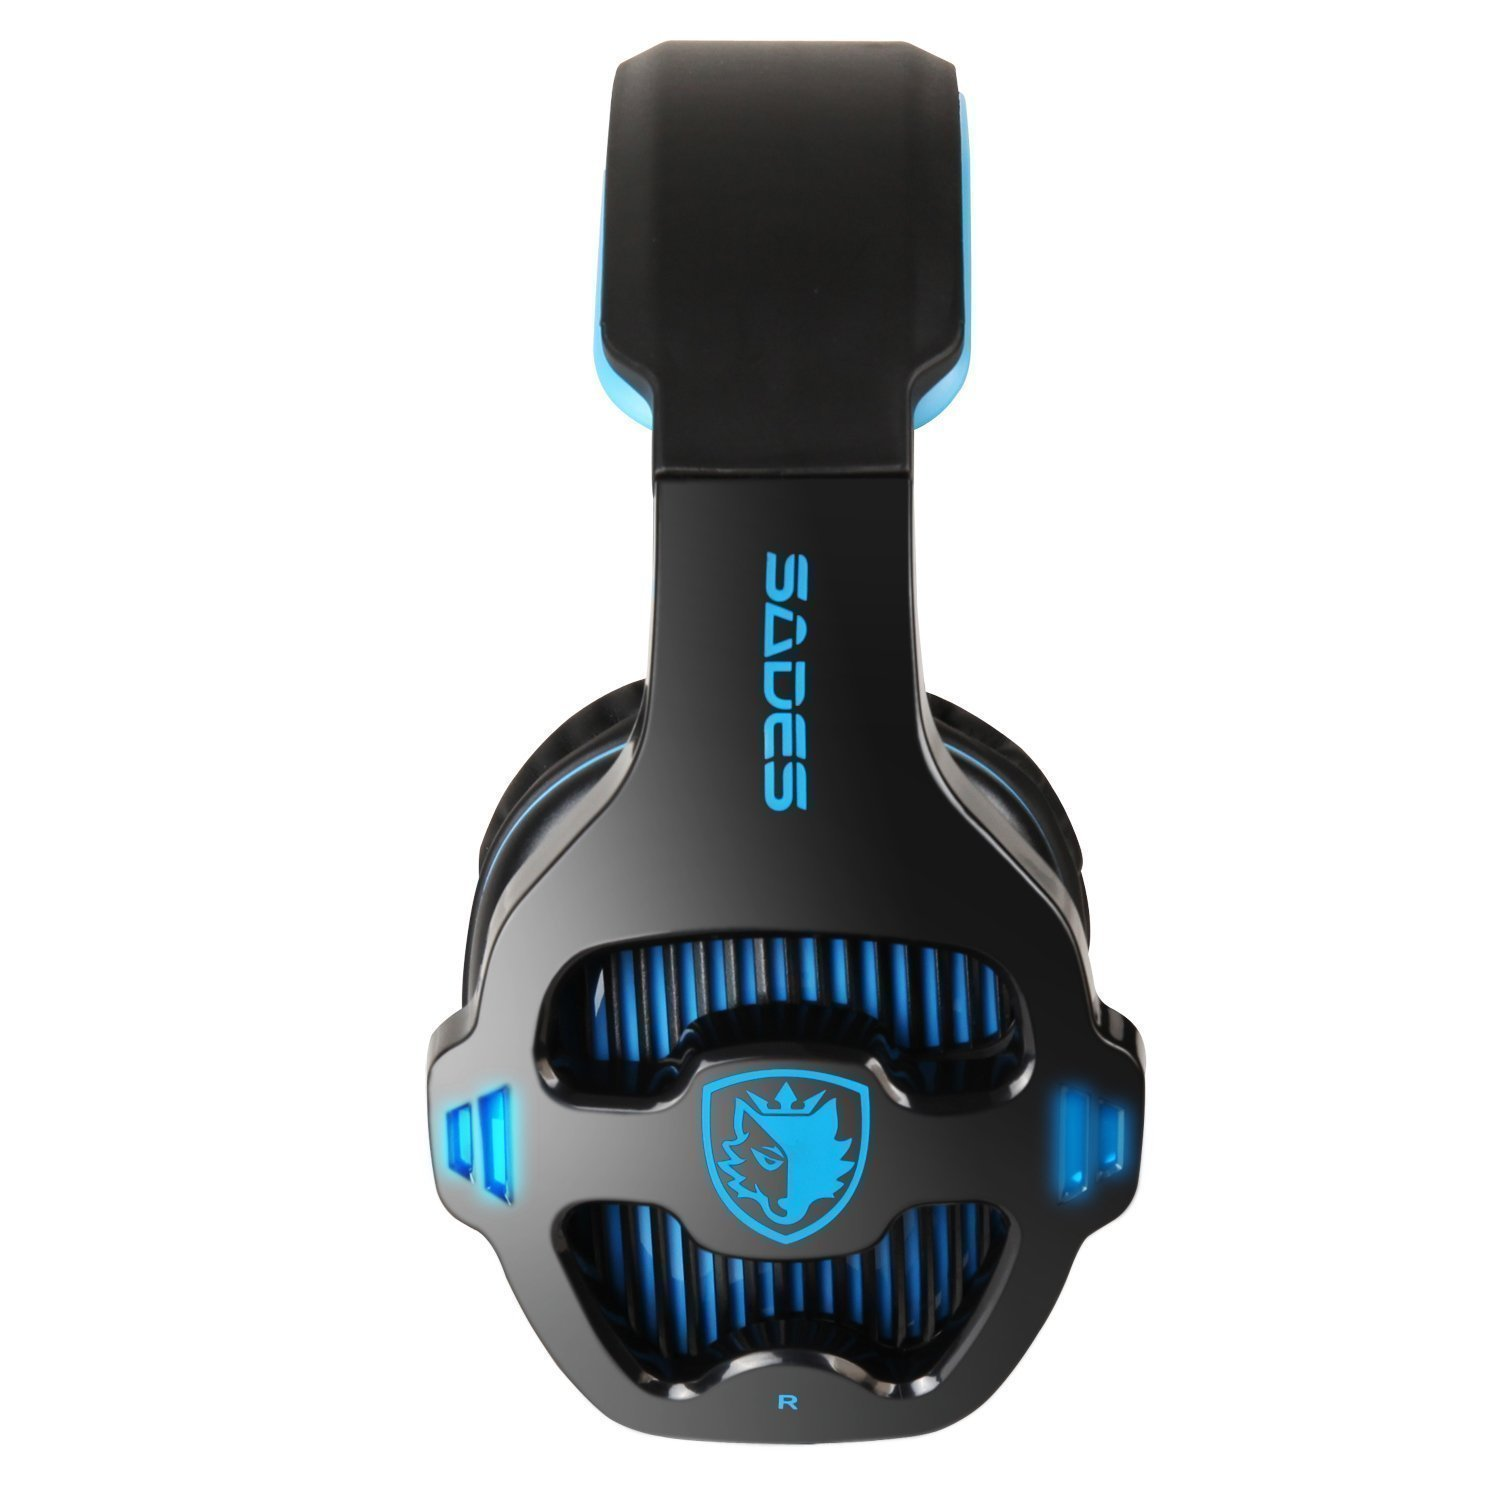 Sades Sa 903 Driver Vector Coffee Design Elements 708 Headset Gaming Headphone Stereo Sound Blue Is Popular For Its Economical Headsets Be It 901 902 Or Youre Going To Love The Quality At A Decent Price Of Only